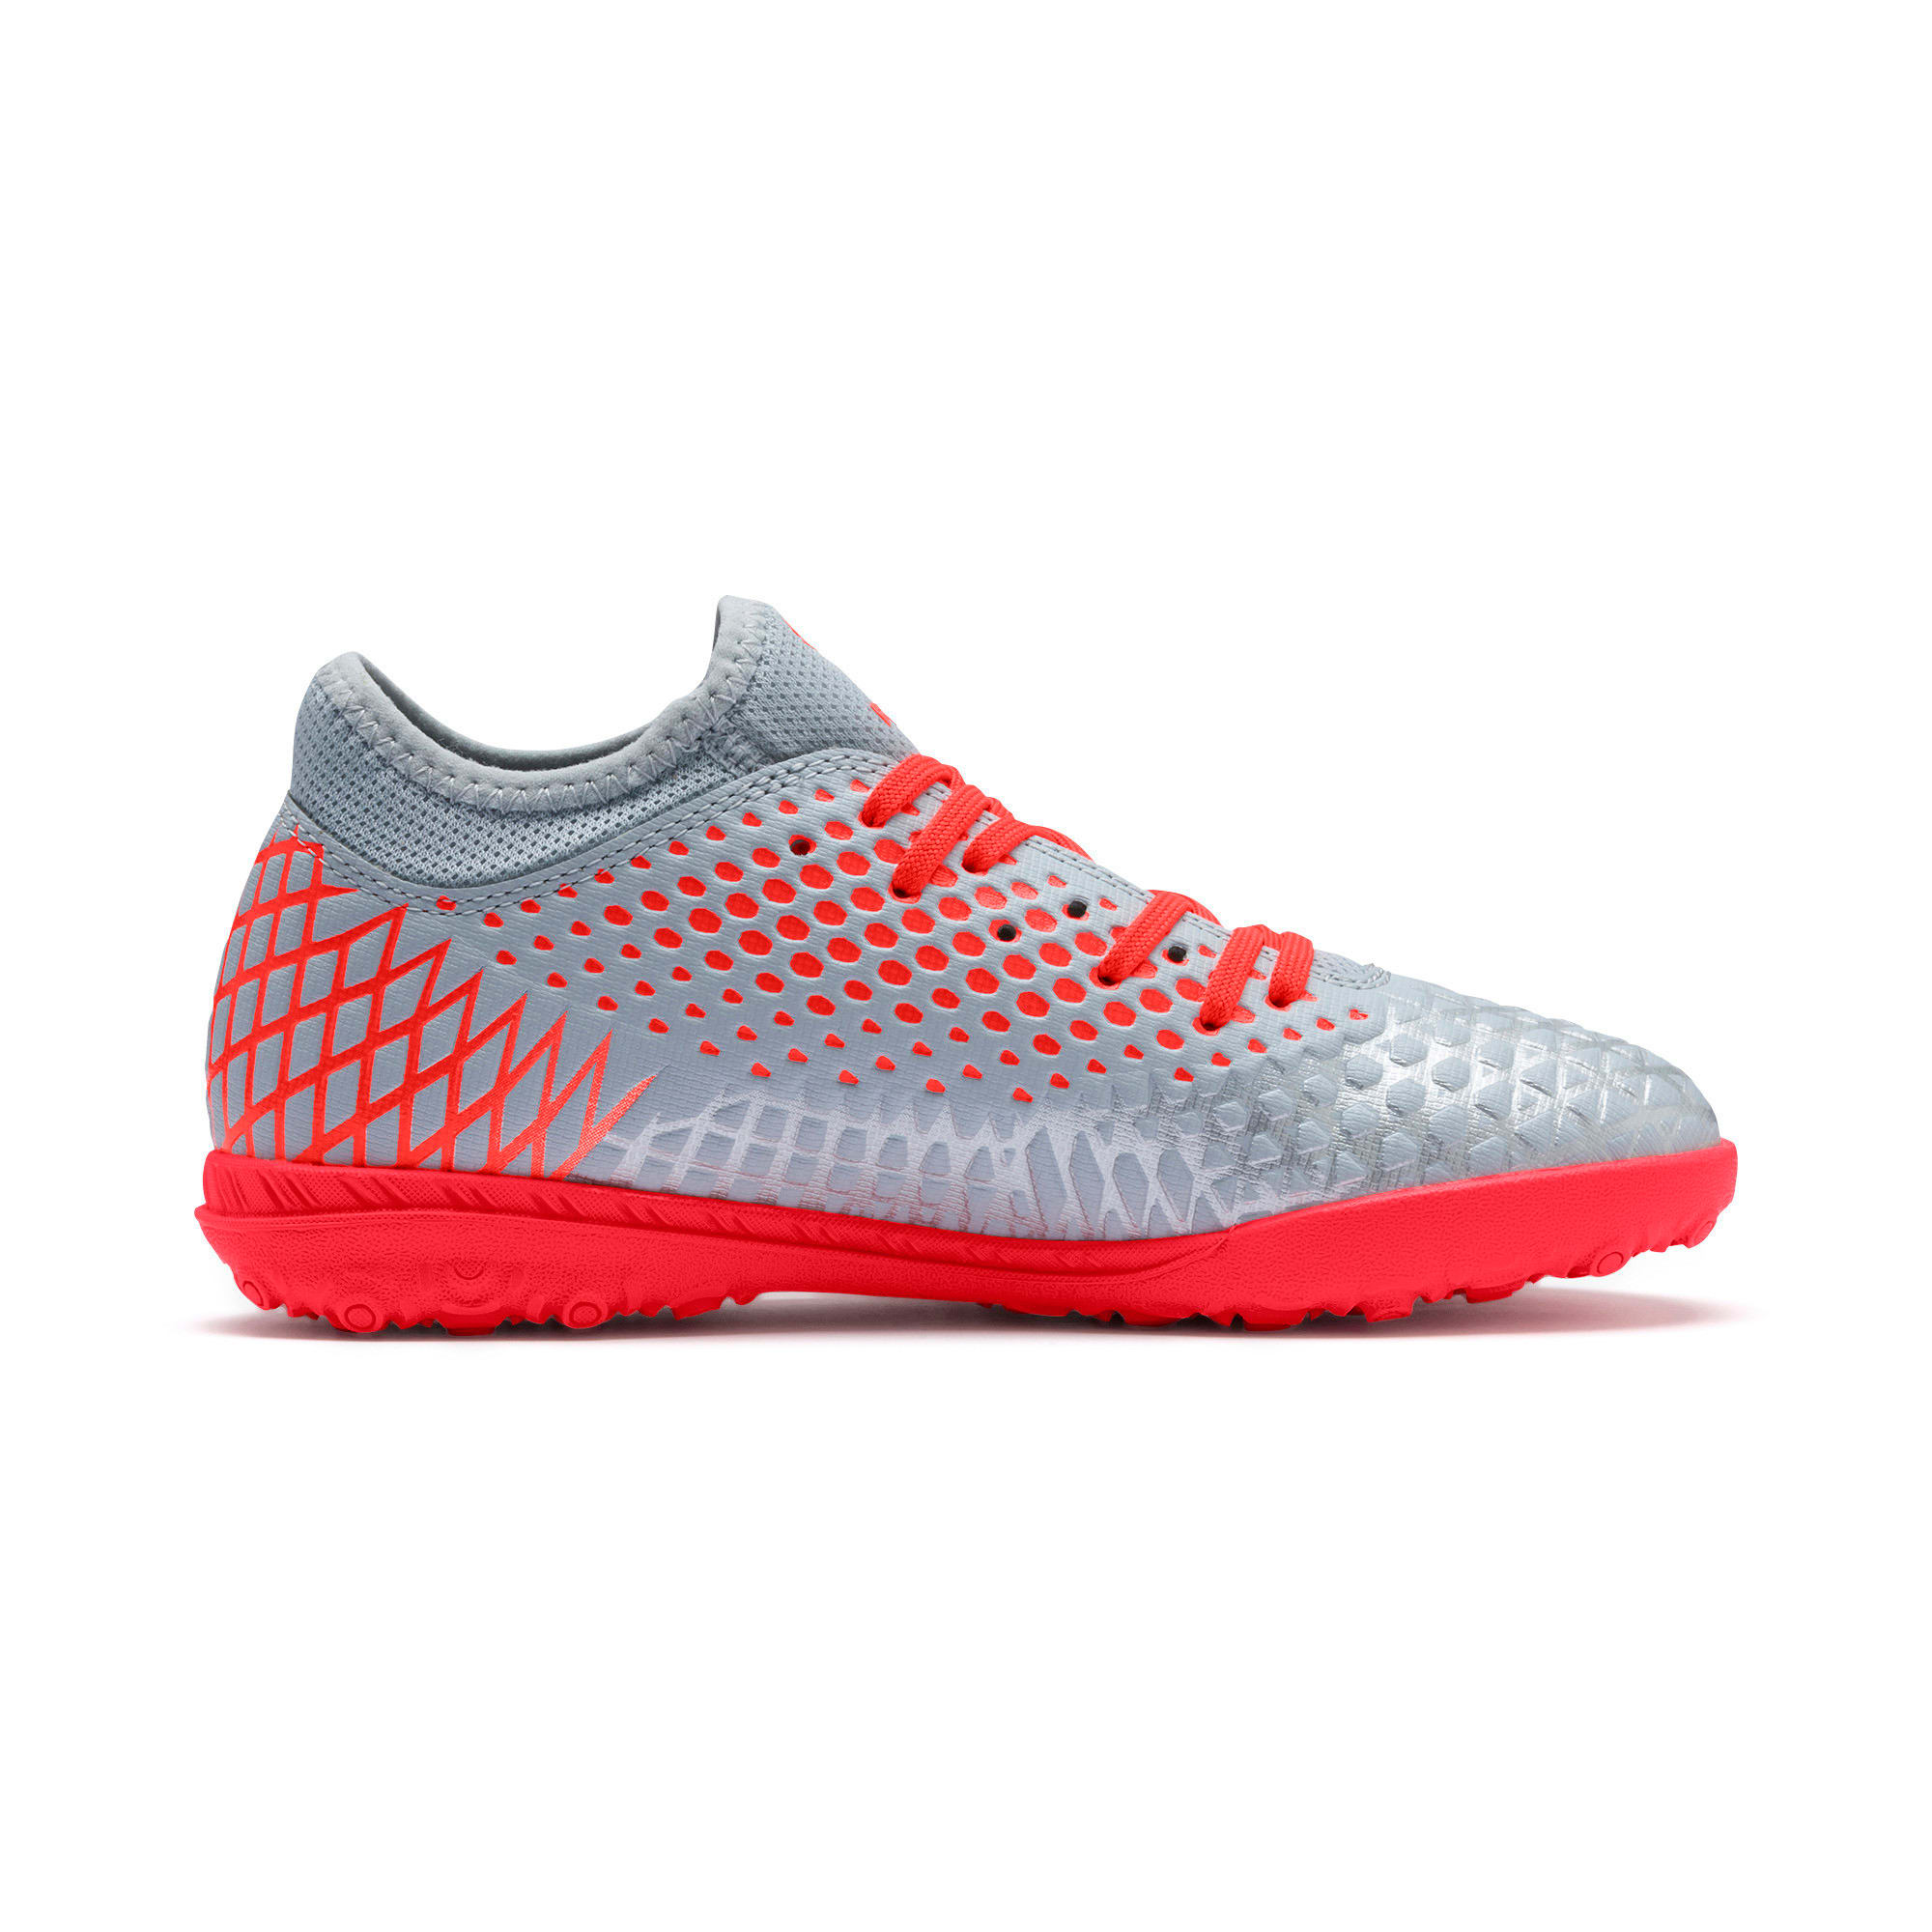 Thumbnail 5 of FUTURE 4.4 TT Youth Football Boots, Glacial Blue-Nrgy Red, medium-IND